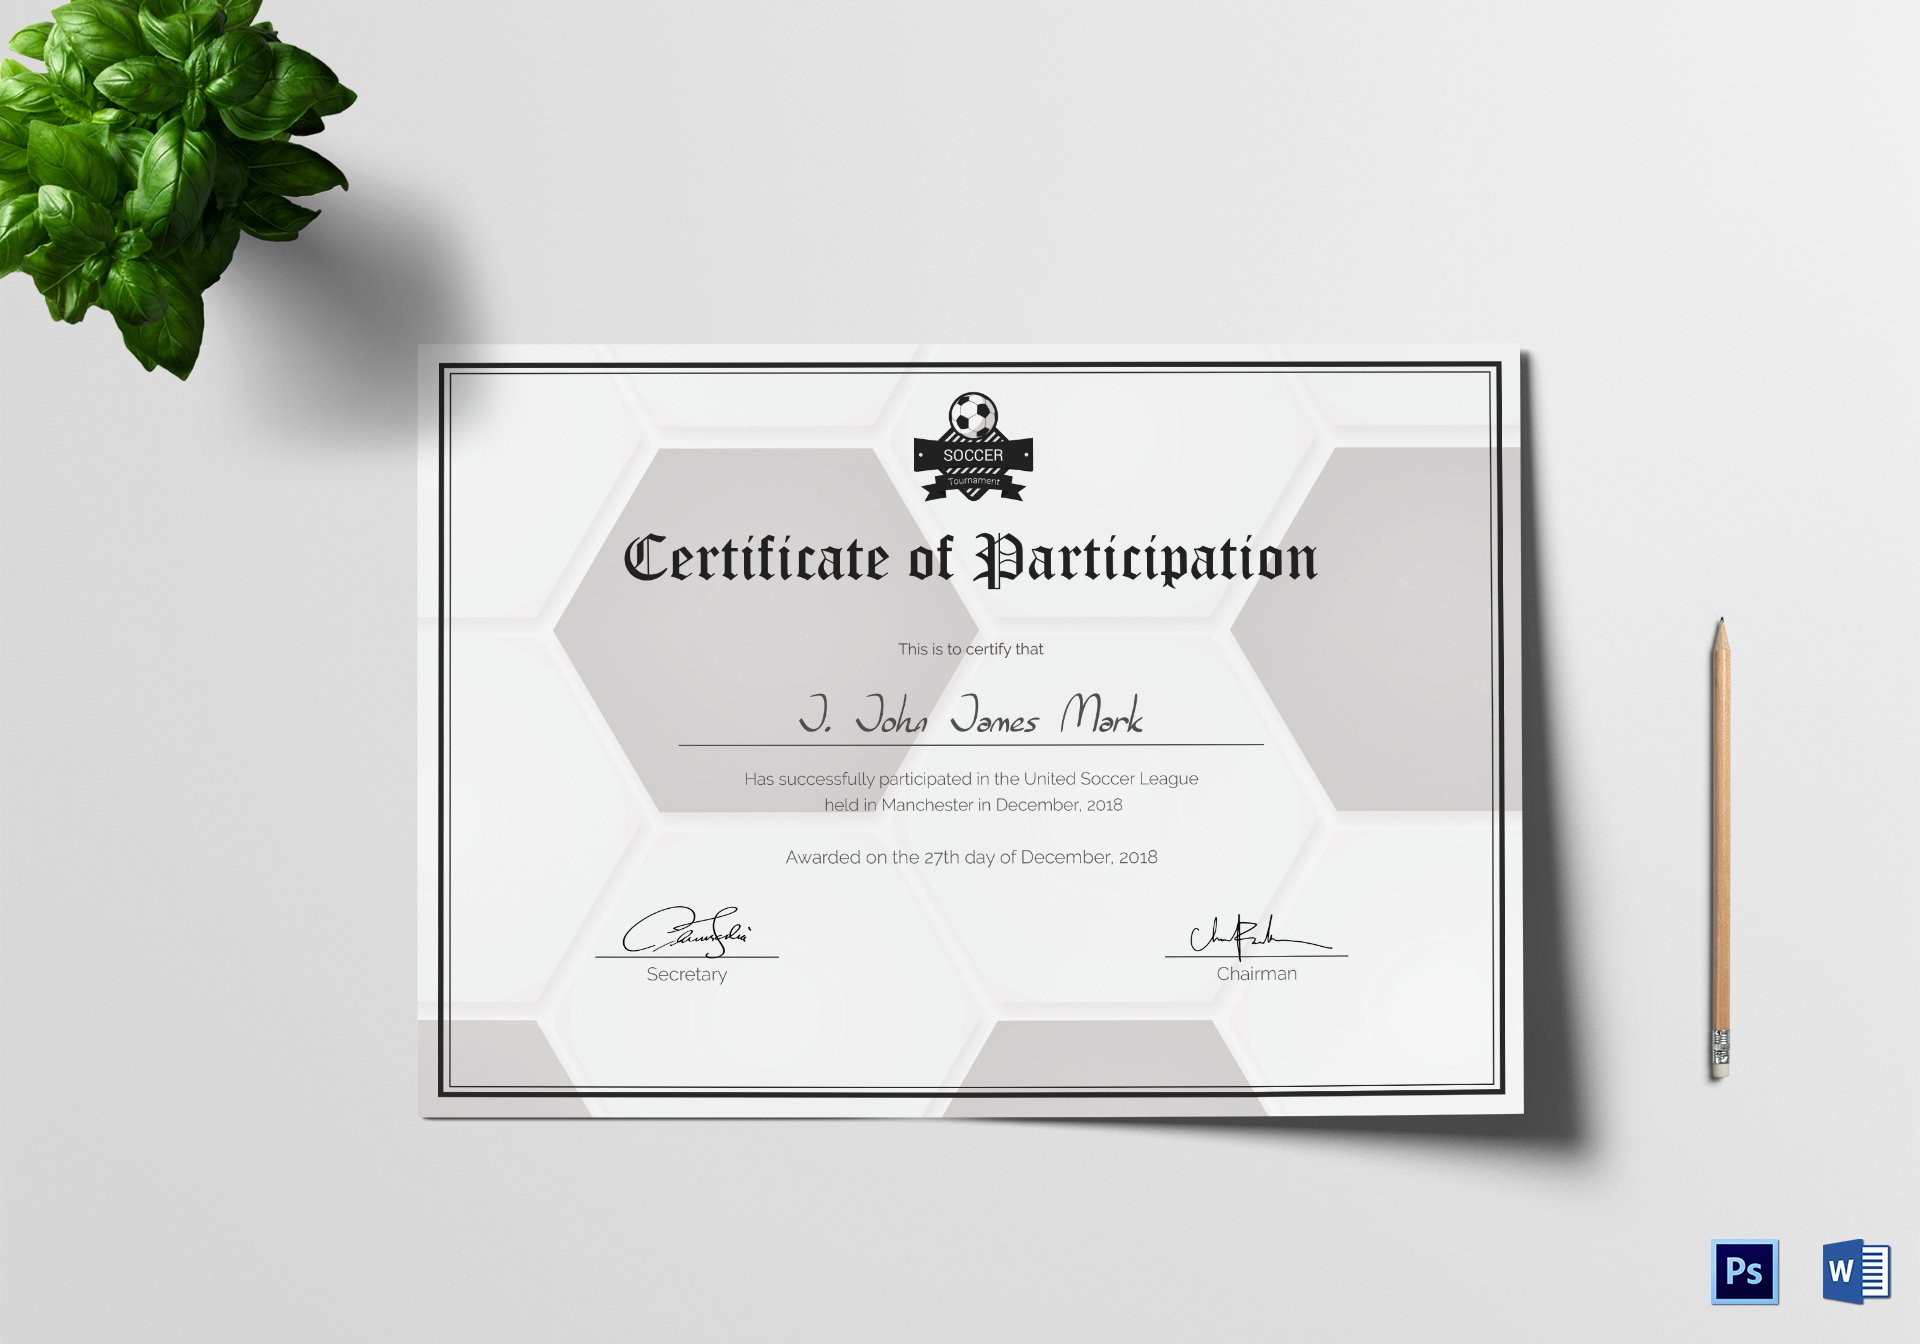 Certificate Of Participation Design Luxury soccer Participation Certificate Design Template In Psd Word